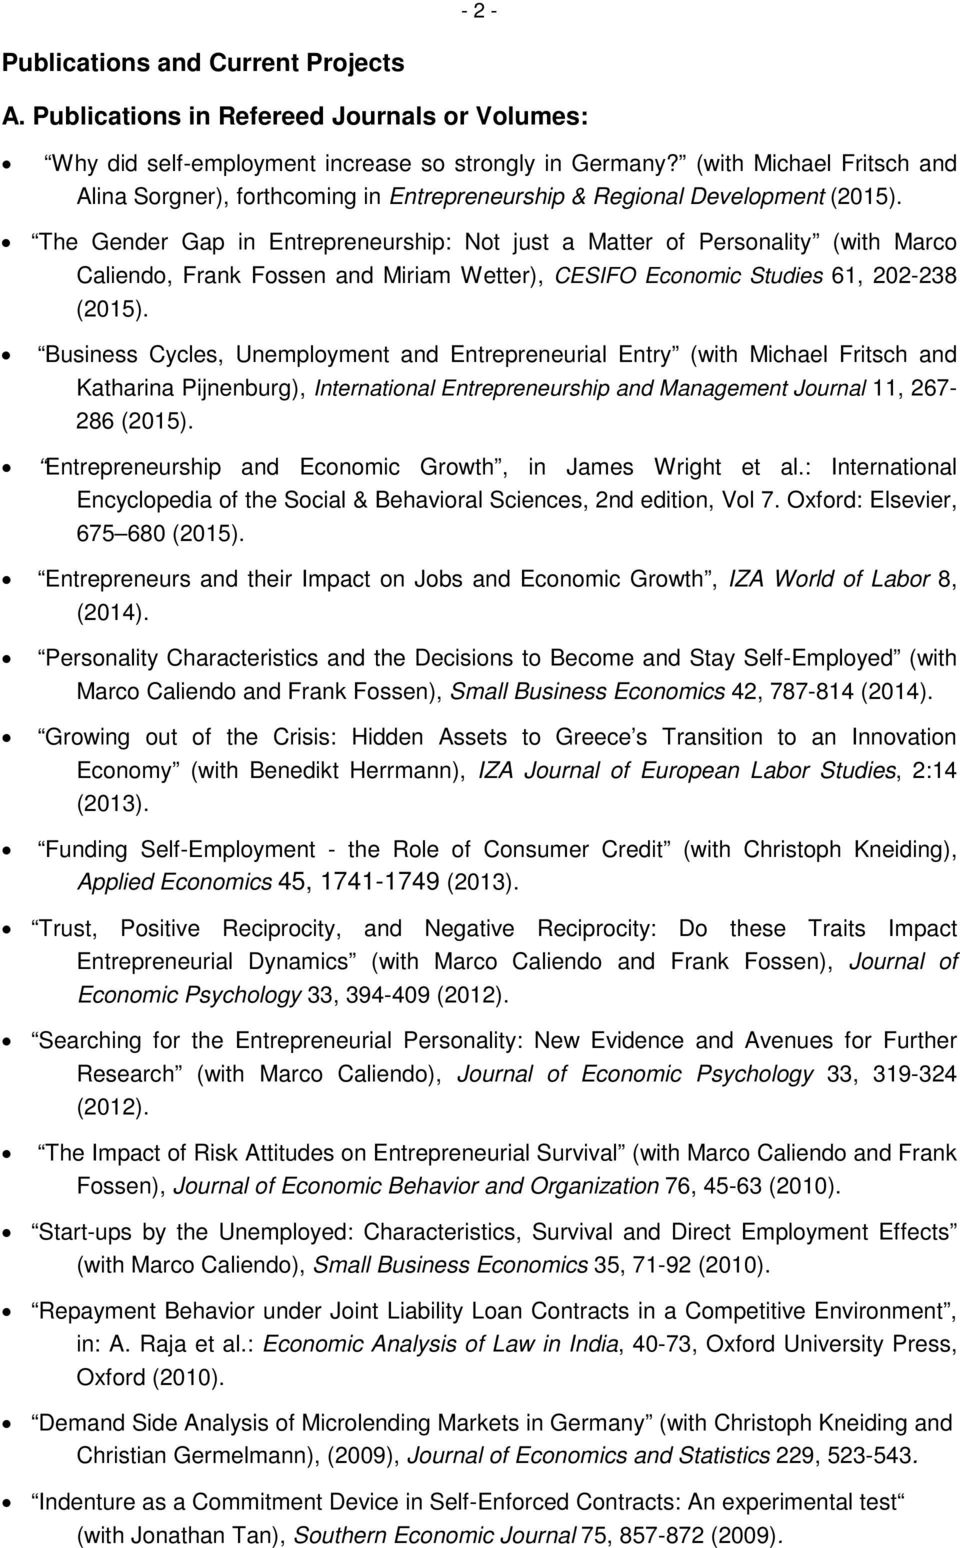 The Gender Gap in Entrepreneurship: Not just a Matter of Personality (with Marco Caliendo, Frank Fossen and Miriam Wetter), CESIFO Economic Studies 61, 202-238 (2015).